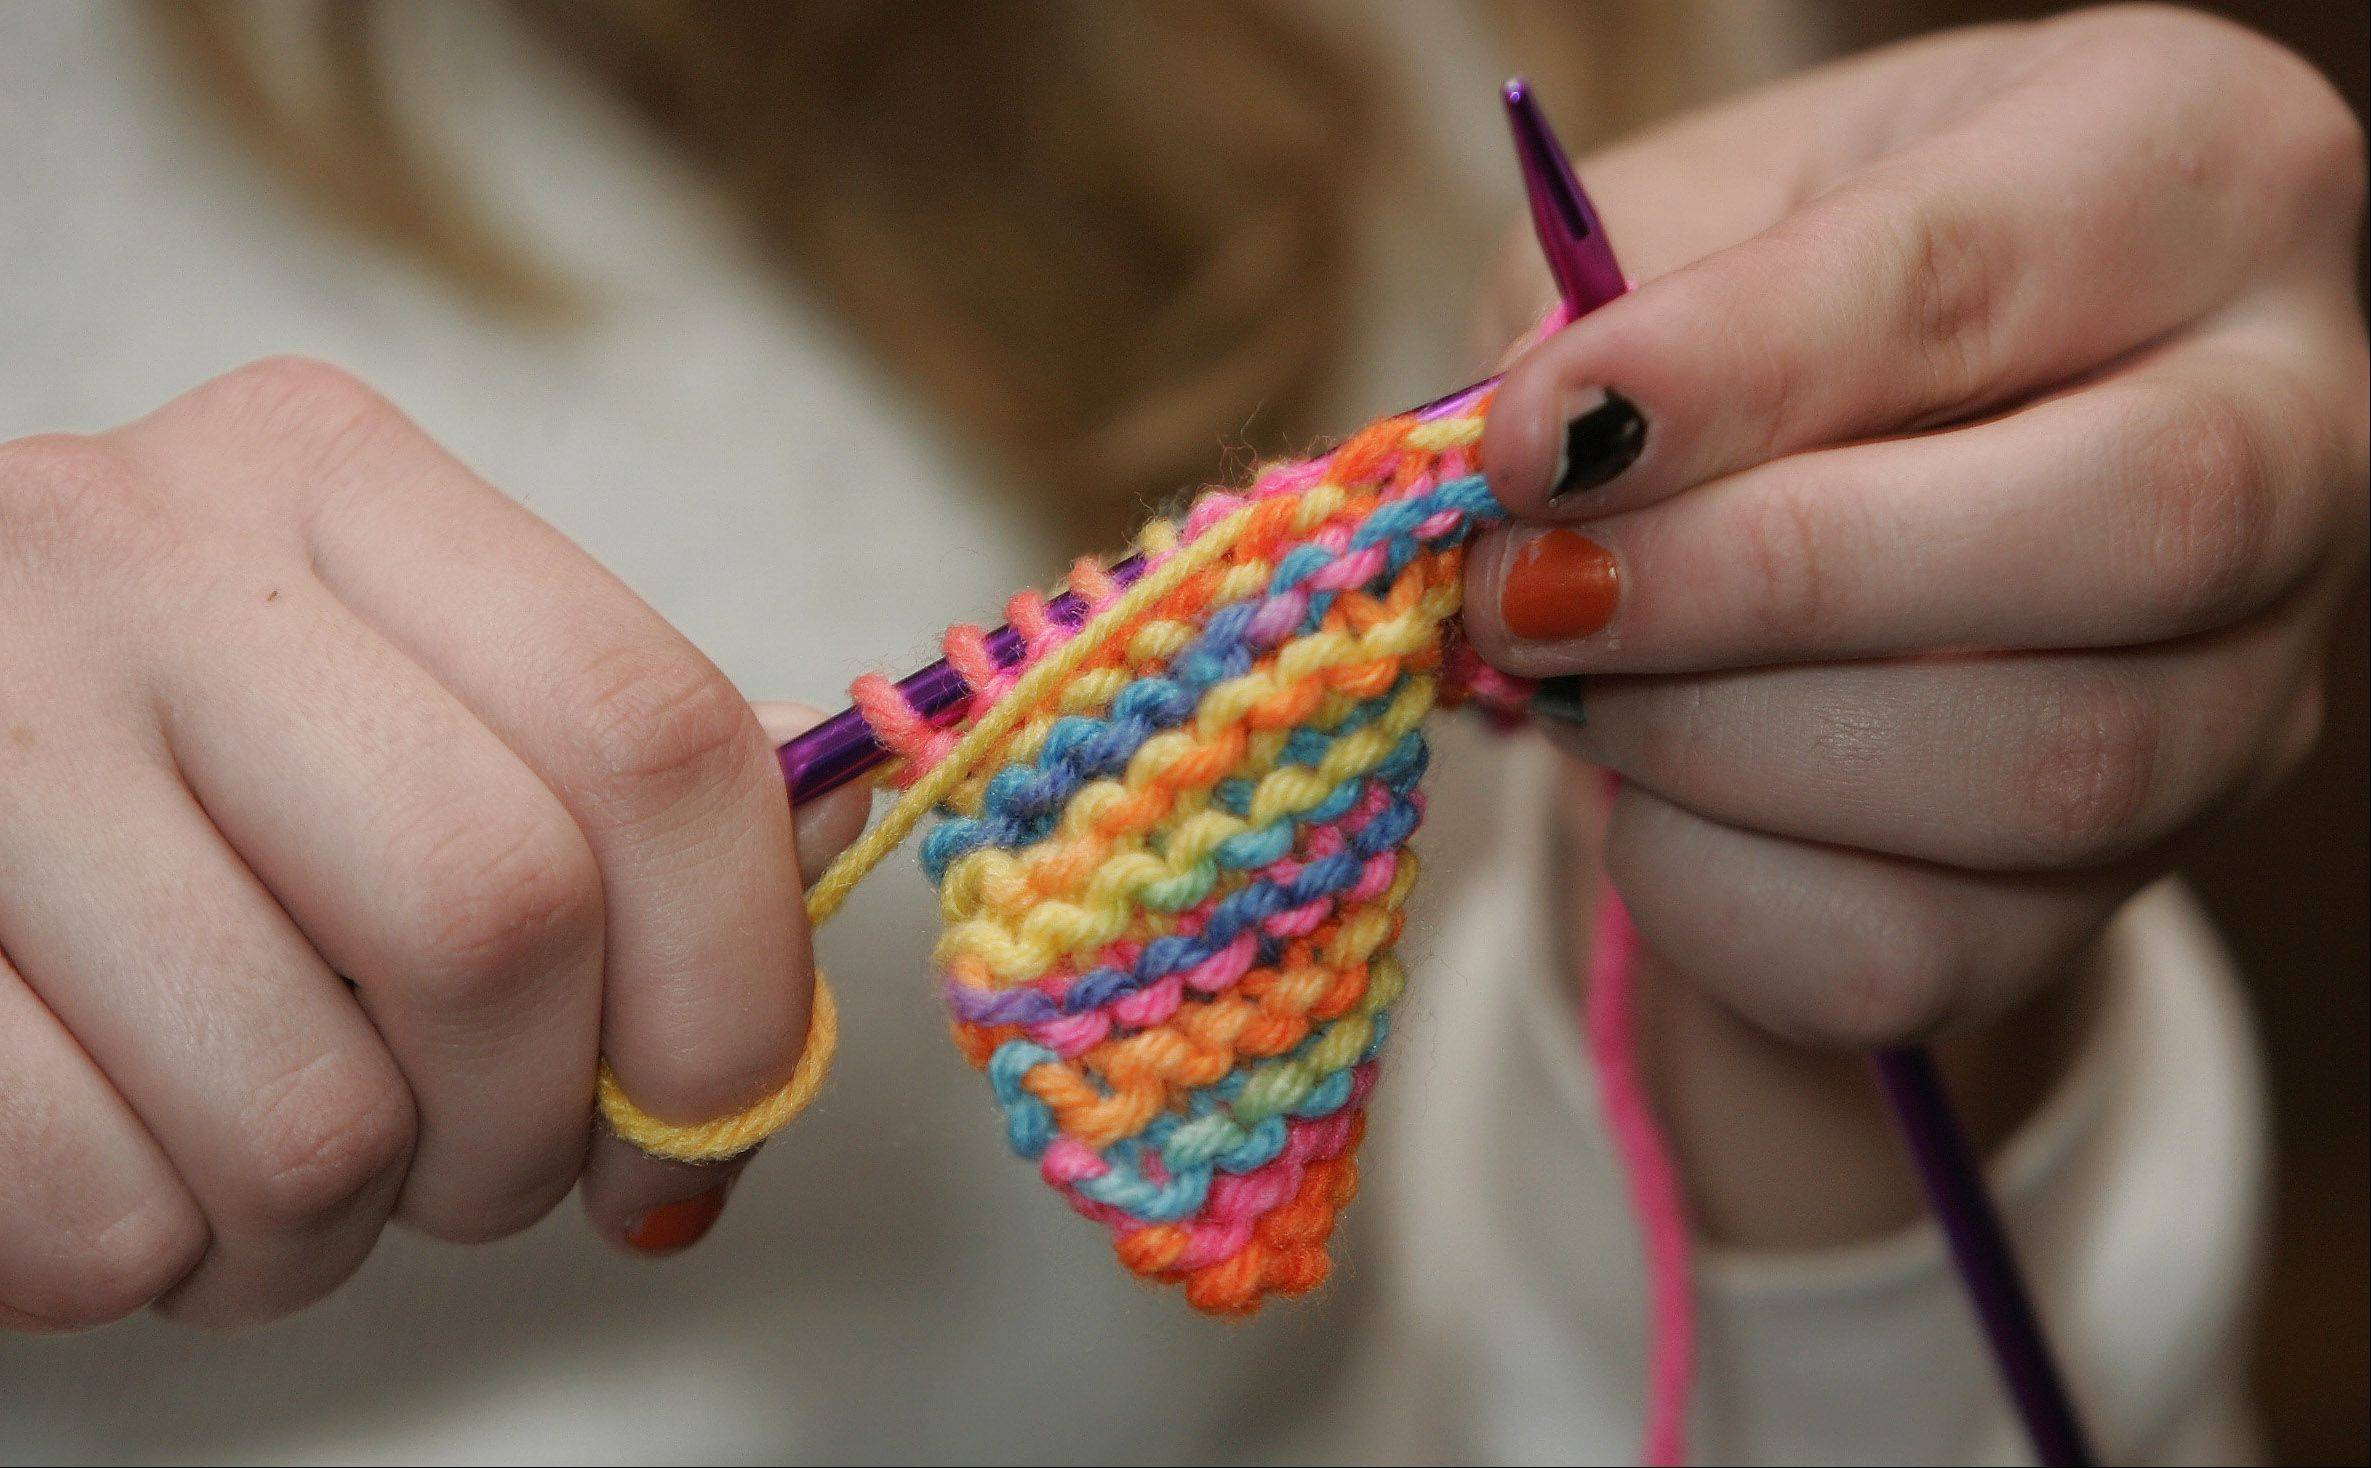 The Association for Individual Development is seeking volunteers to knit scarves to raise money for the nonprofit organization.